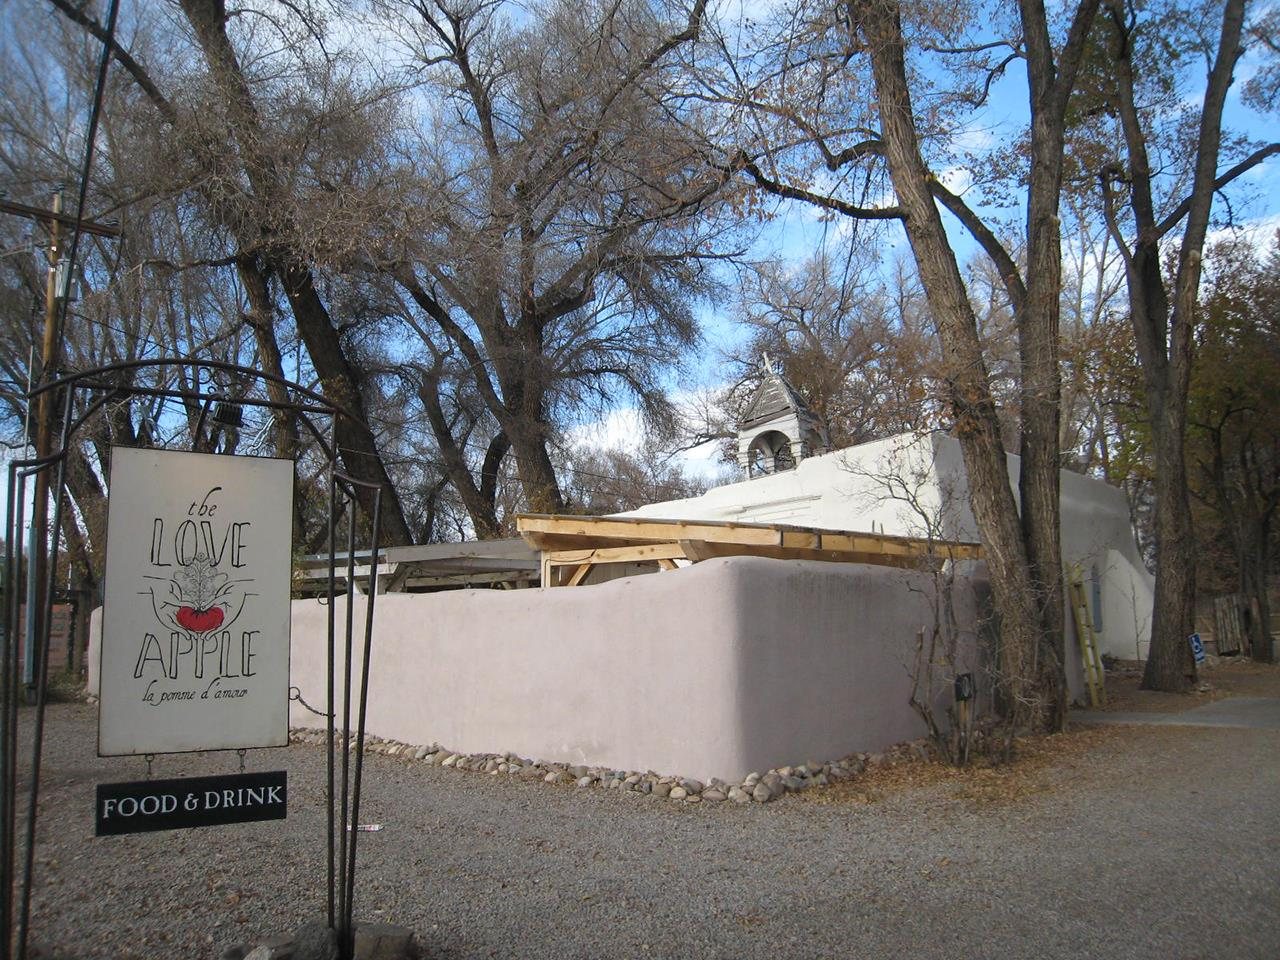 #Taos neighborhoods #Love Apple Restaurant #fine dining #Town of Taos #Taos #New Mexico